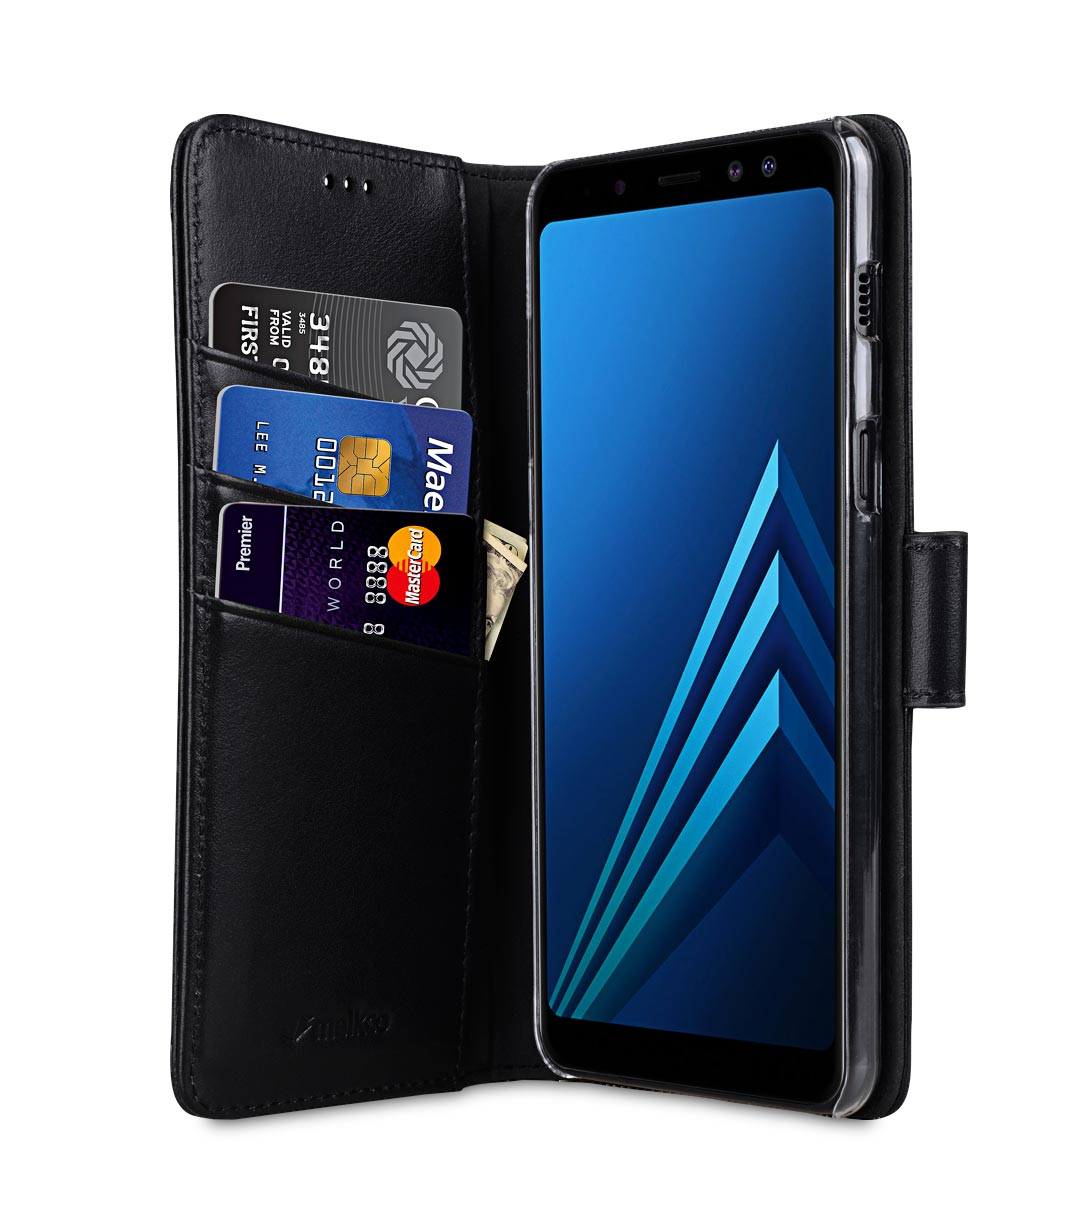 premium leather case for samsung galaxy a8 plus 2018. Black Bedroom Furniture Sets. Home Design Ideas